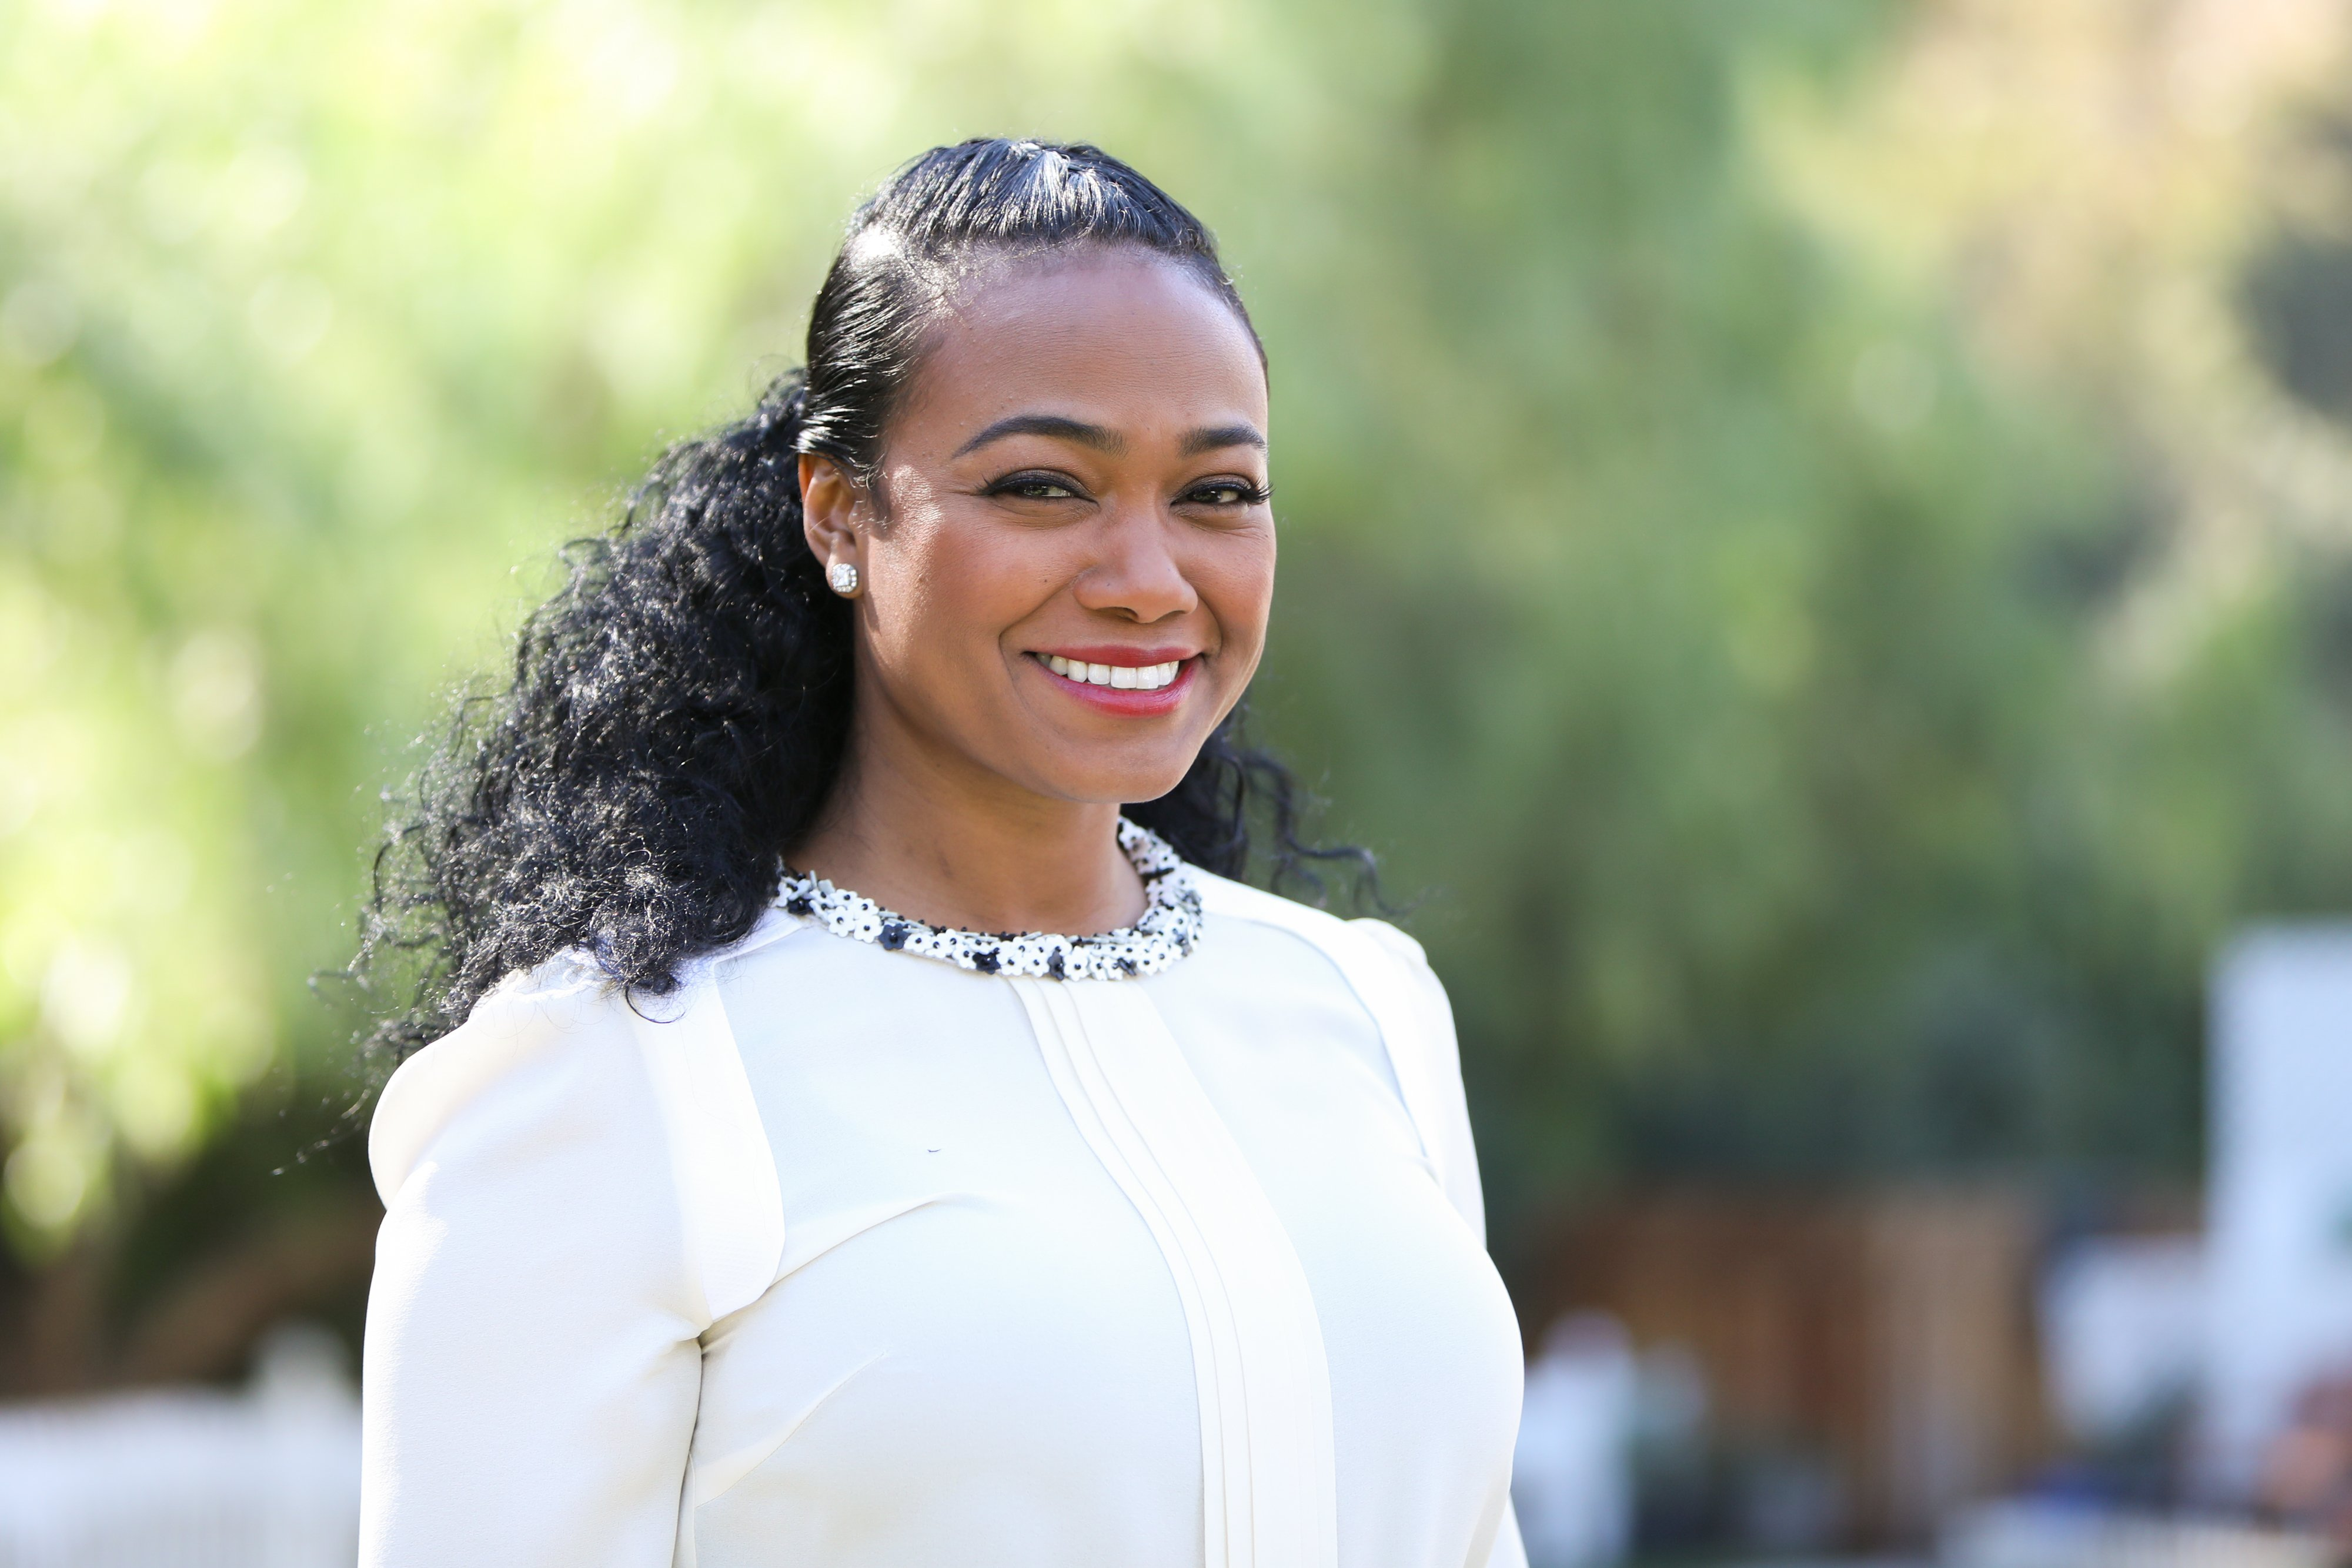 Tatyana Ali pictured at Universal Studios Hollywood on November 13, 2018 in Universal City, California. | Source: Getty Images